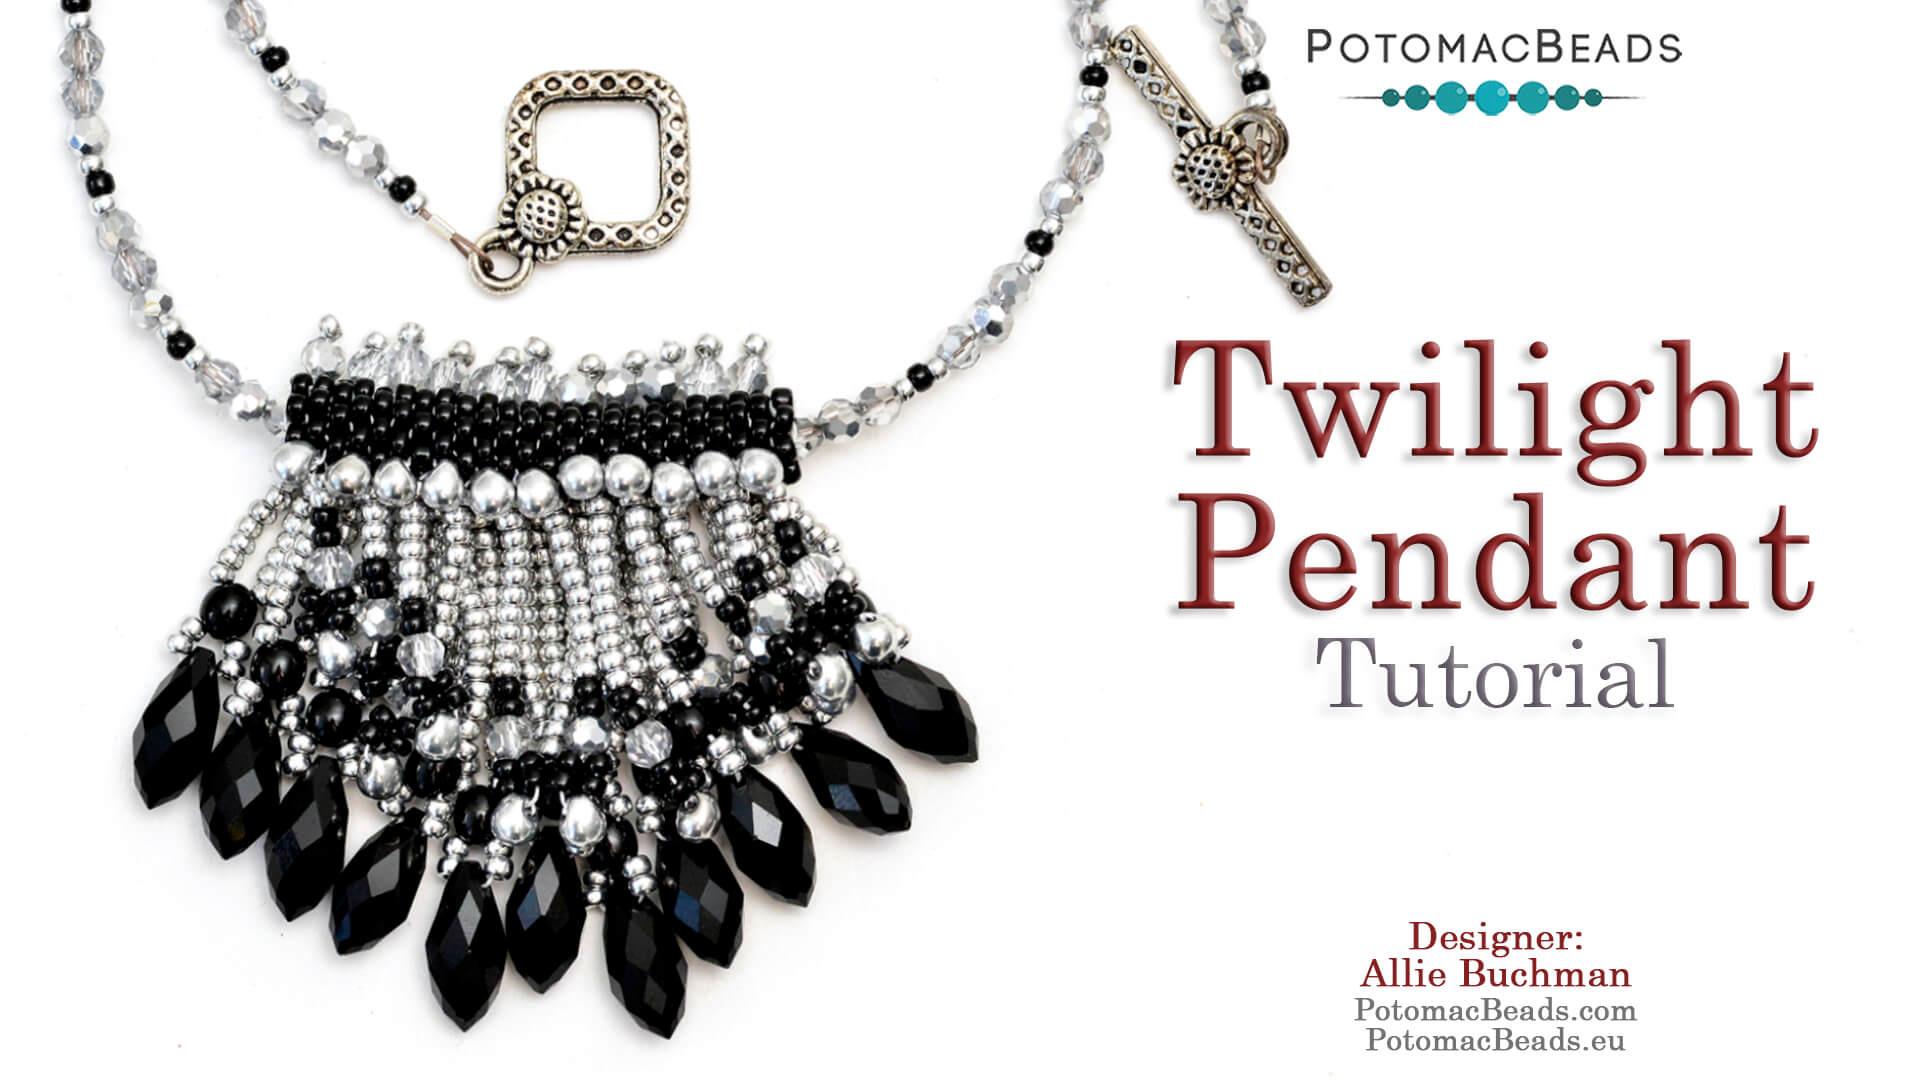 How to Bead / Videos Sorted by Beads / Potomac Crystal Videos / Twilight Pendant Tutorial